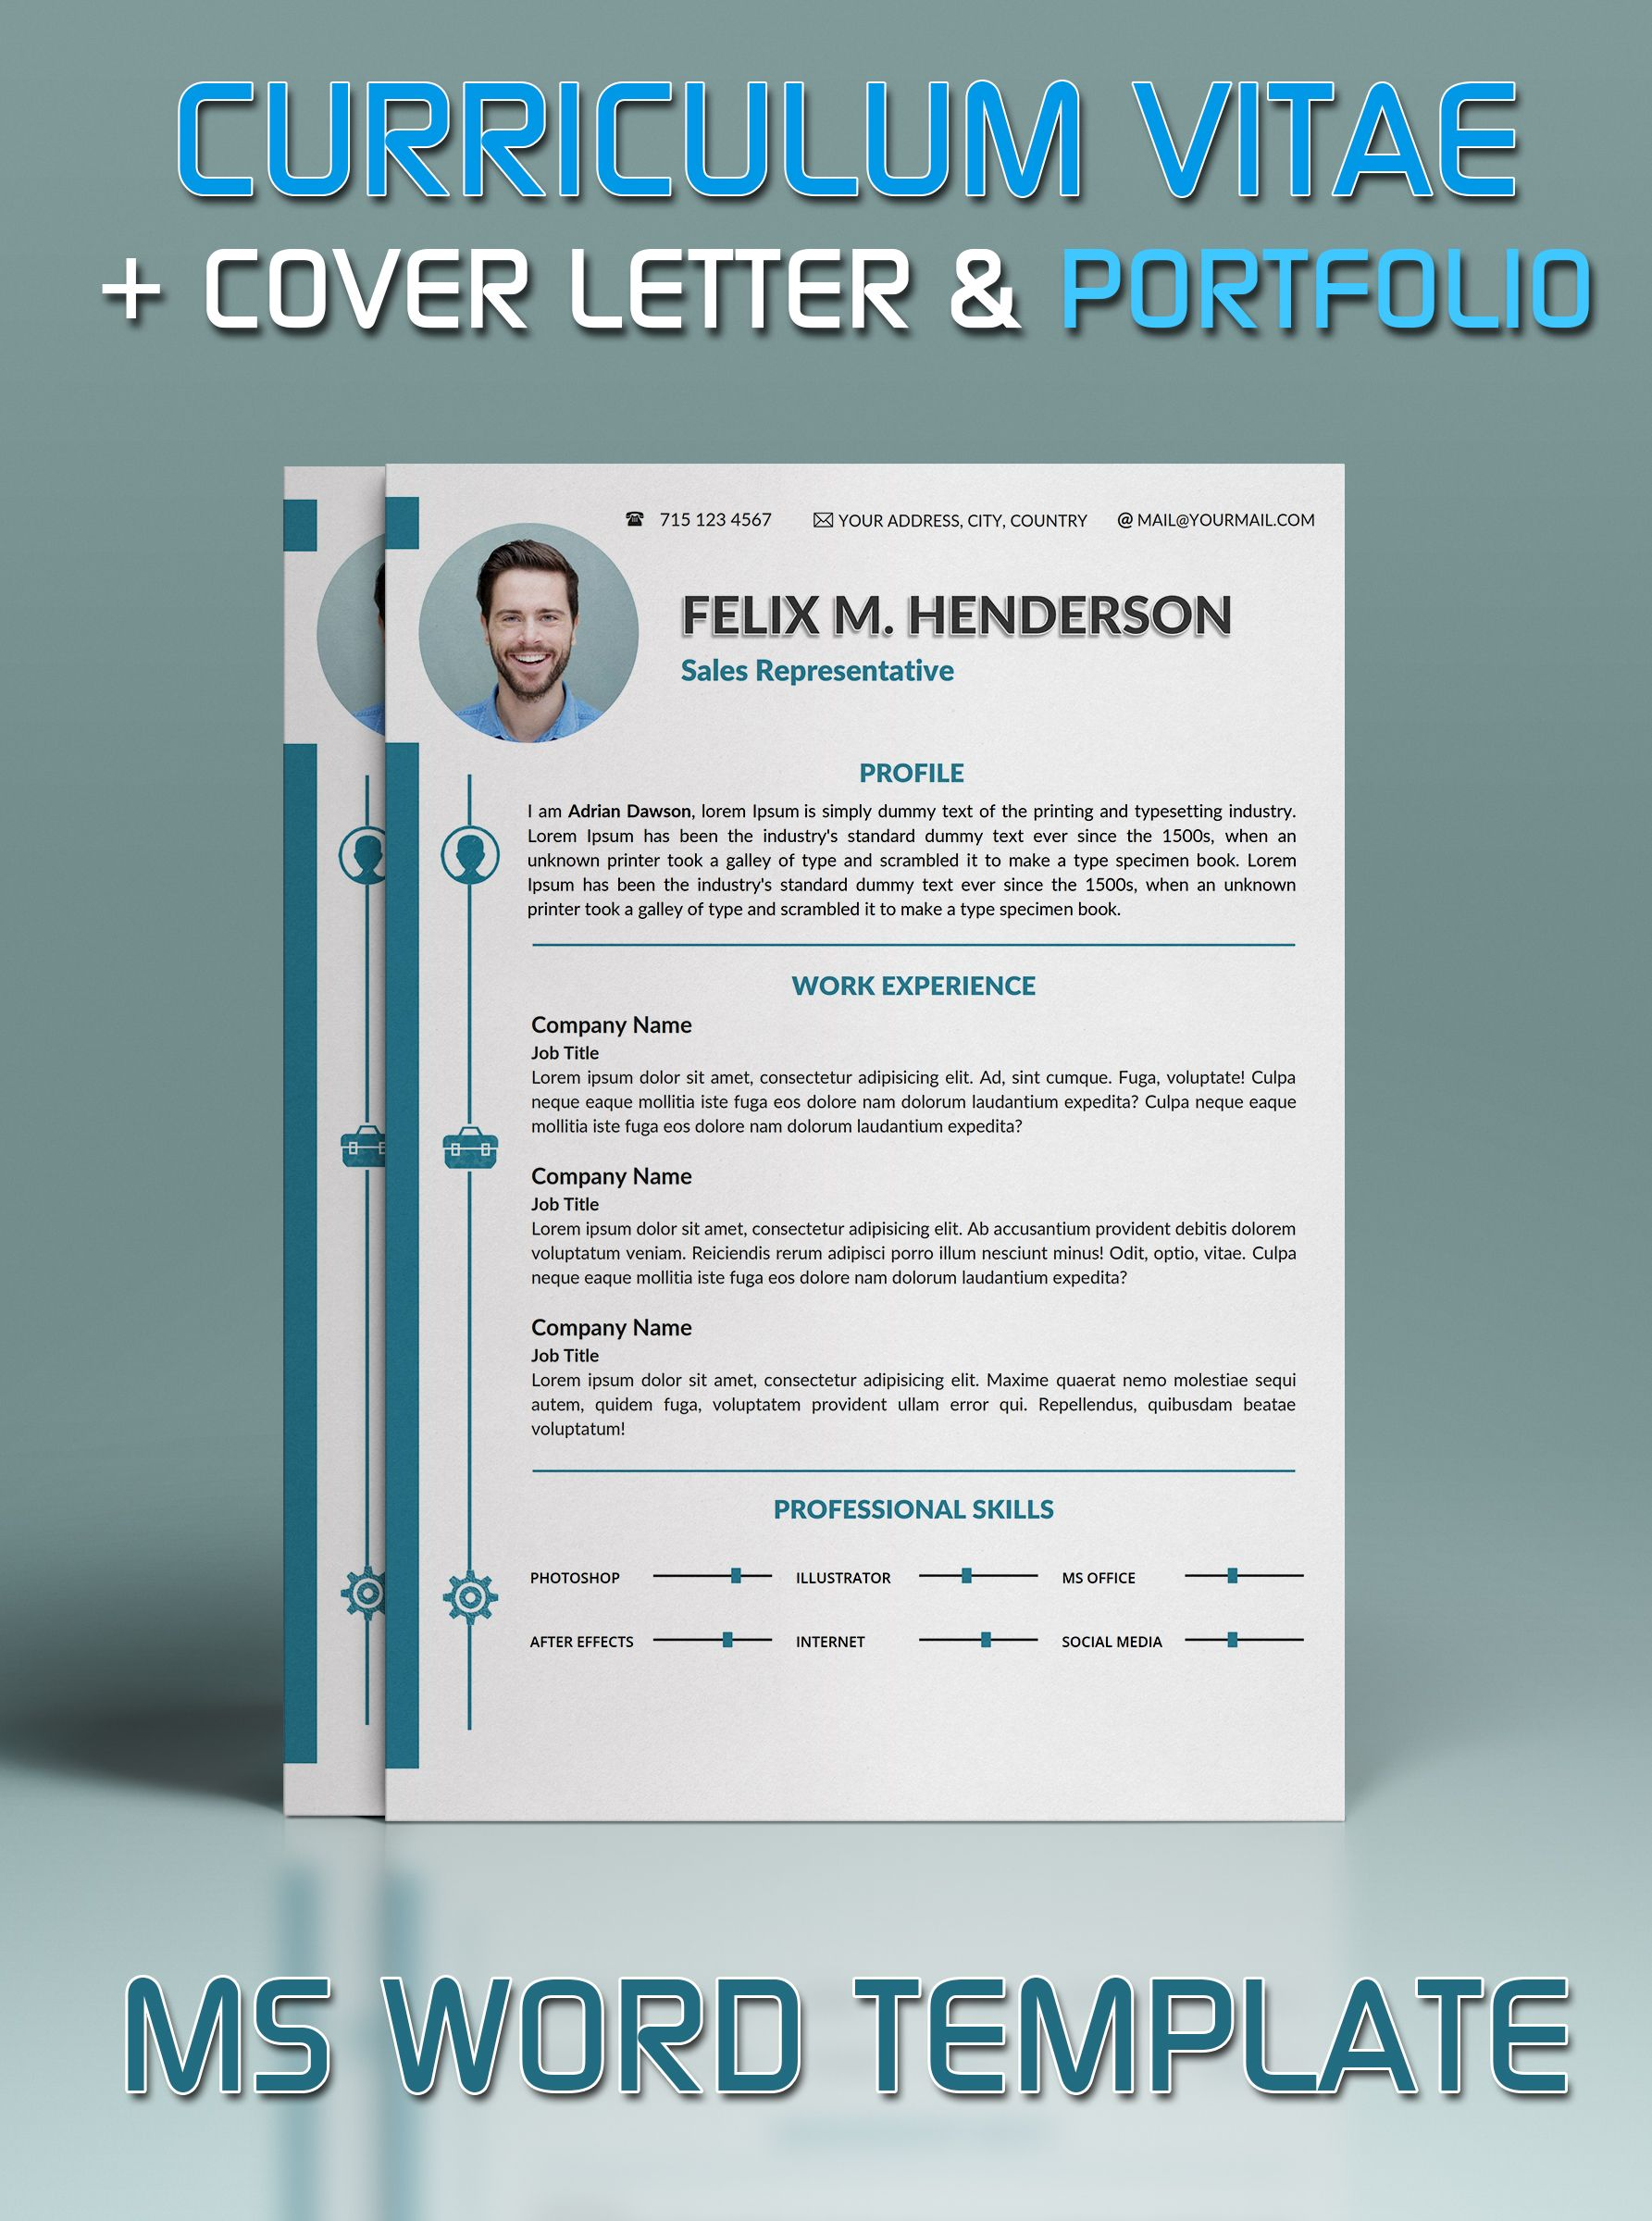 Resume Template in Microsoft Word, Cover Letter and